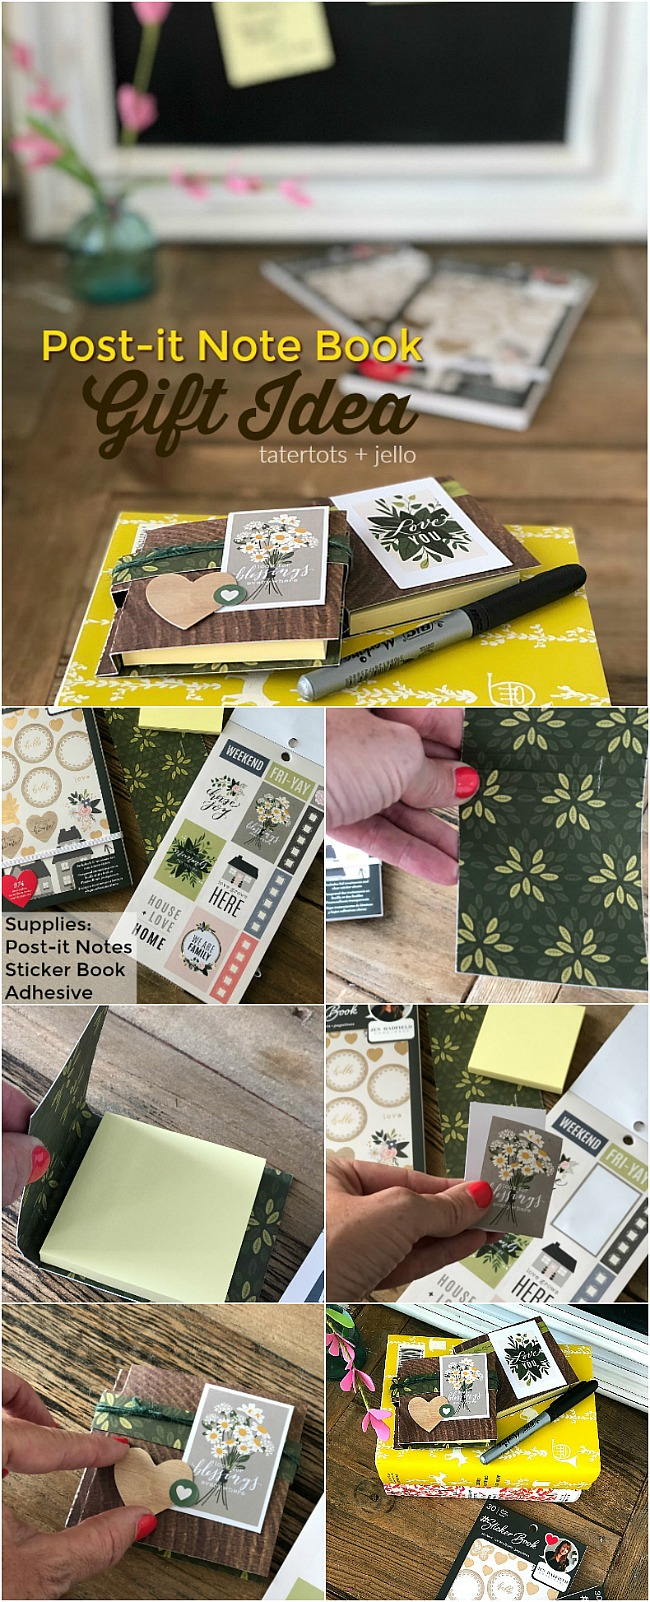 Create a Post-it Note book using sticker books! Sticker books have more than 900 handy and beautiful stickers that are great for making all kinds of projects!